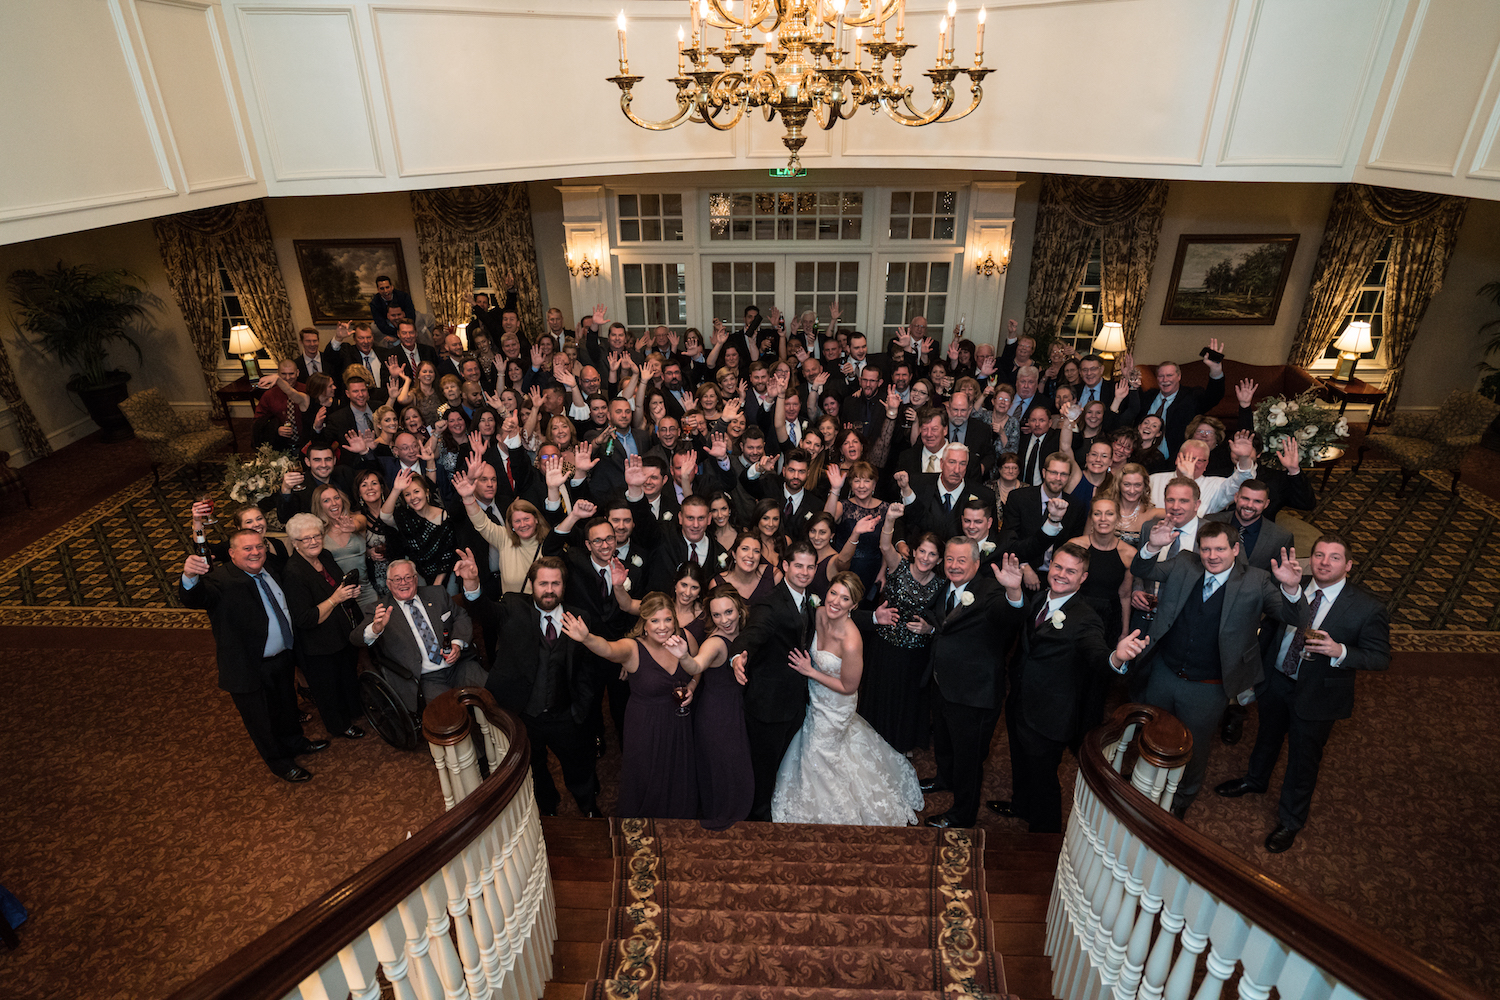 richard&kelly-all-guests-waving-wedding-photographers-nj